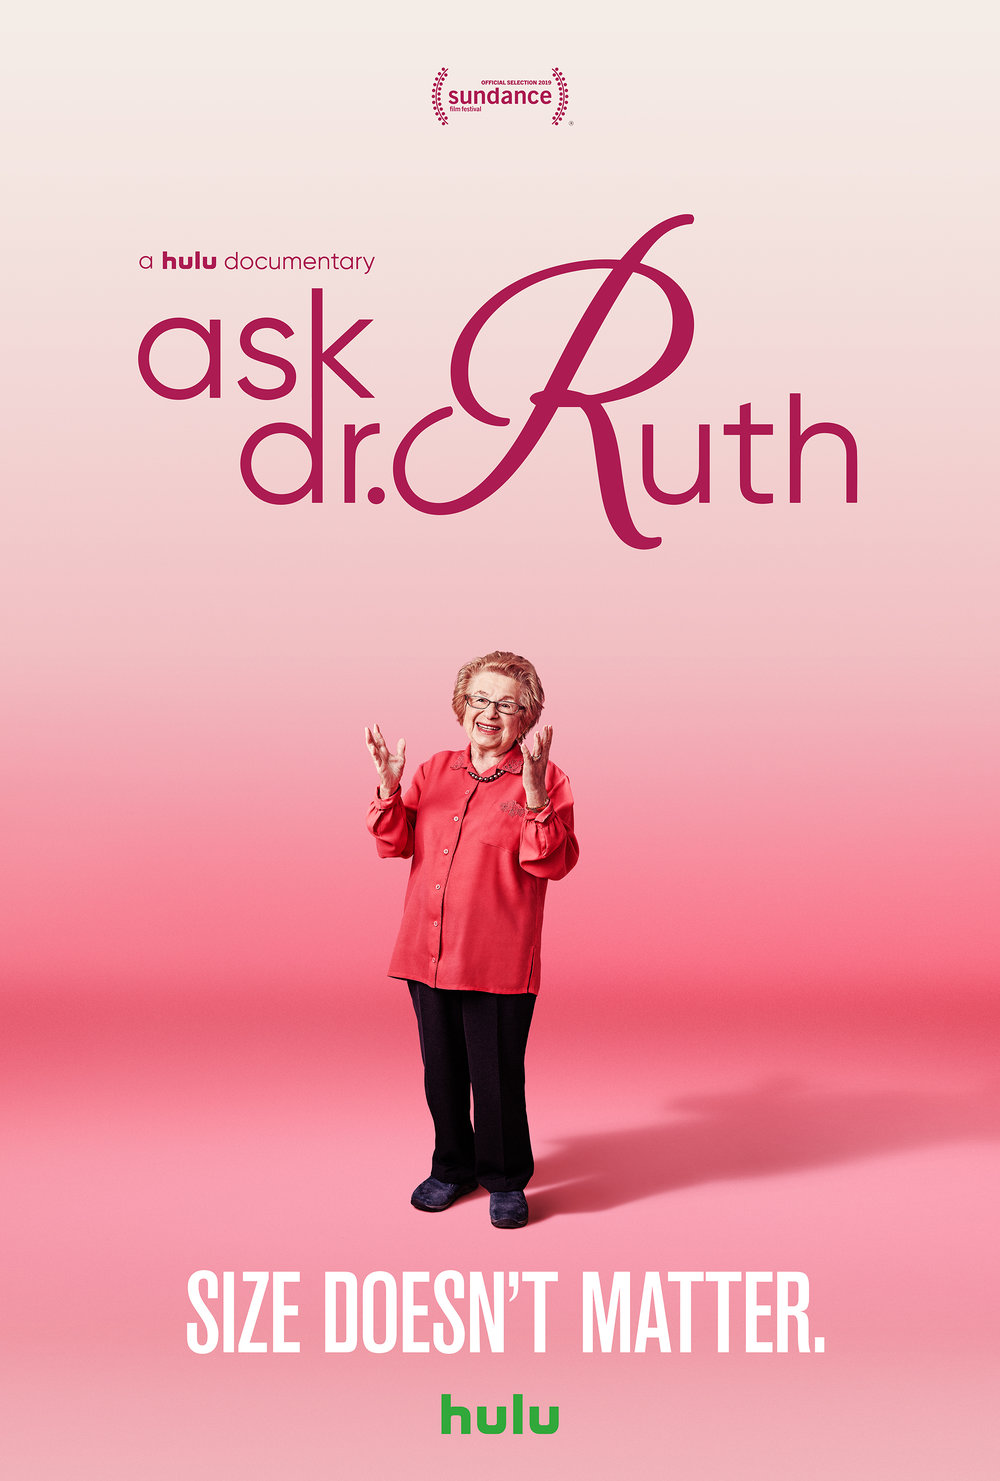 Ask Dr. Ruth  is a documentary portrait chronicling the incredible life of Dr. Ruth Westheimer, a Holocaust survivor who became America's most famous sex therapist. As her 90th birthday approaches, Dr. Ruth revisits her painful past and her career at the forefront of the sexual revolution. A Hulu/Magnolia film co-produced with  Delirio Films , premiering at Sundance 2019.